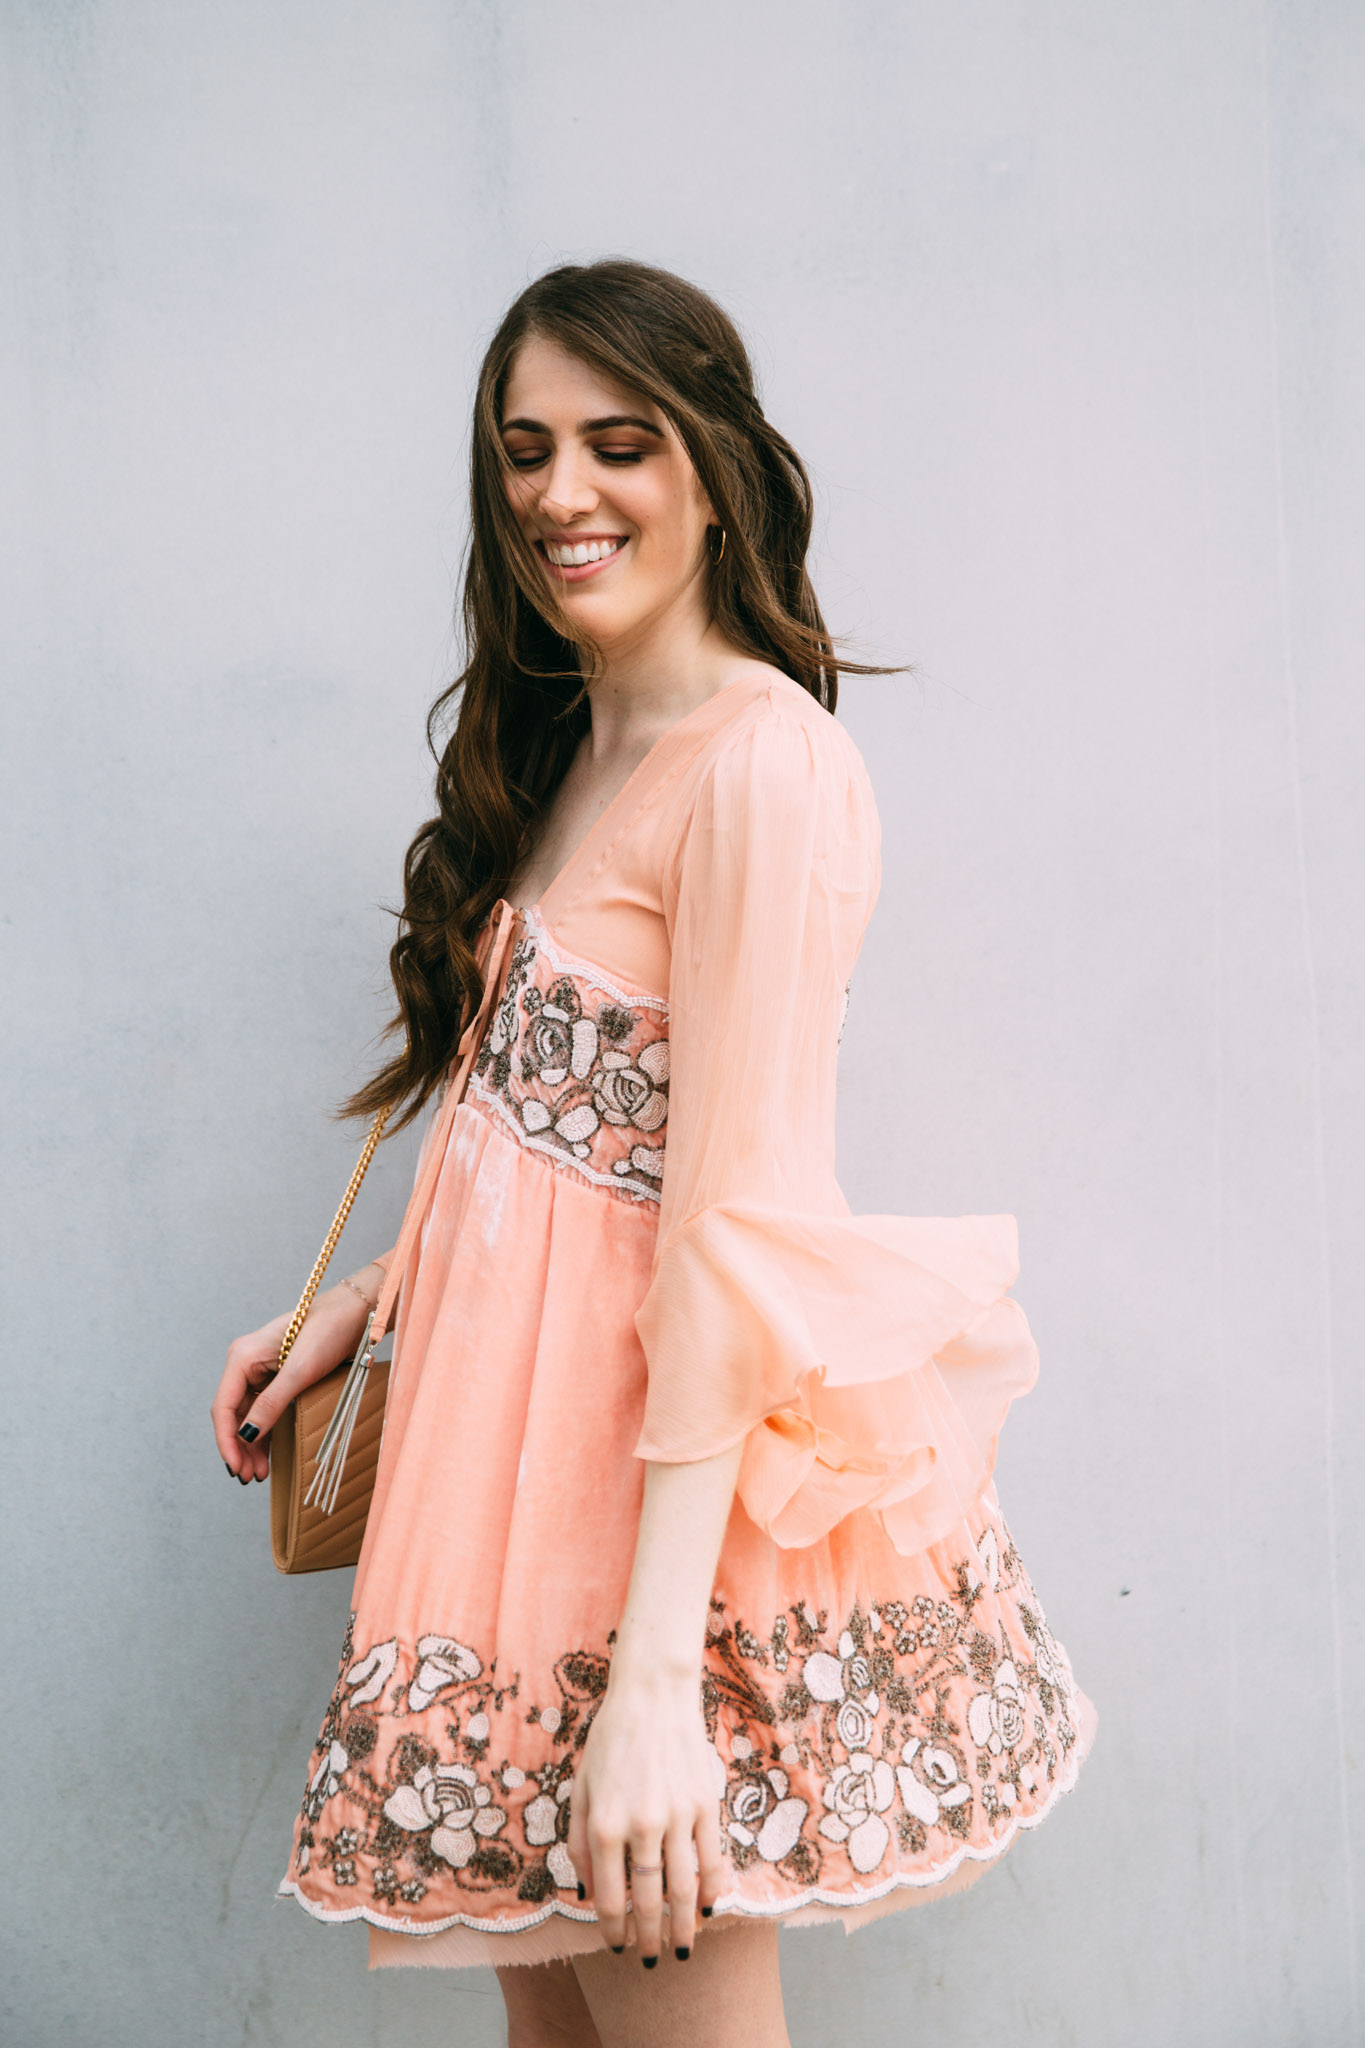 Free People embellished blush dress